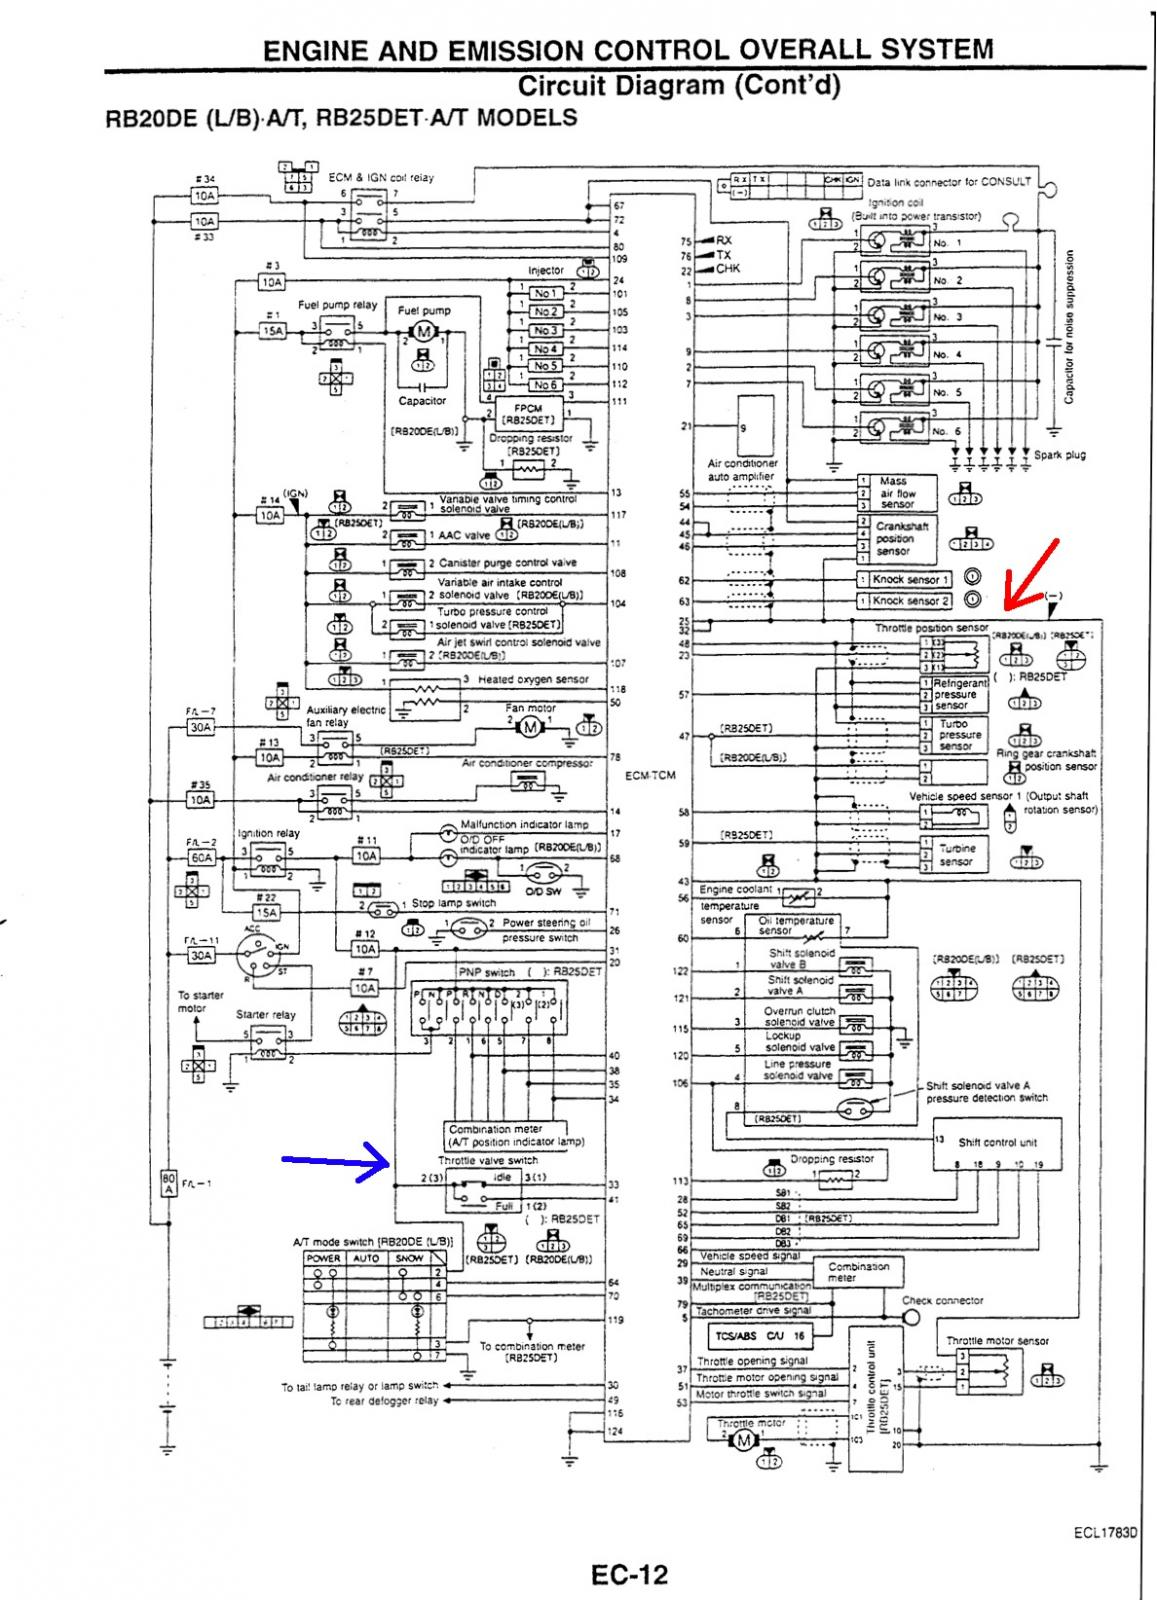 rb25det s2 wiring diagram nutone bathroom fan thread r32 rb25 swap tps question forced induction